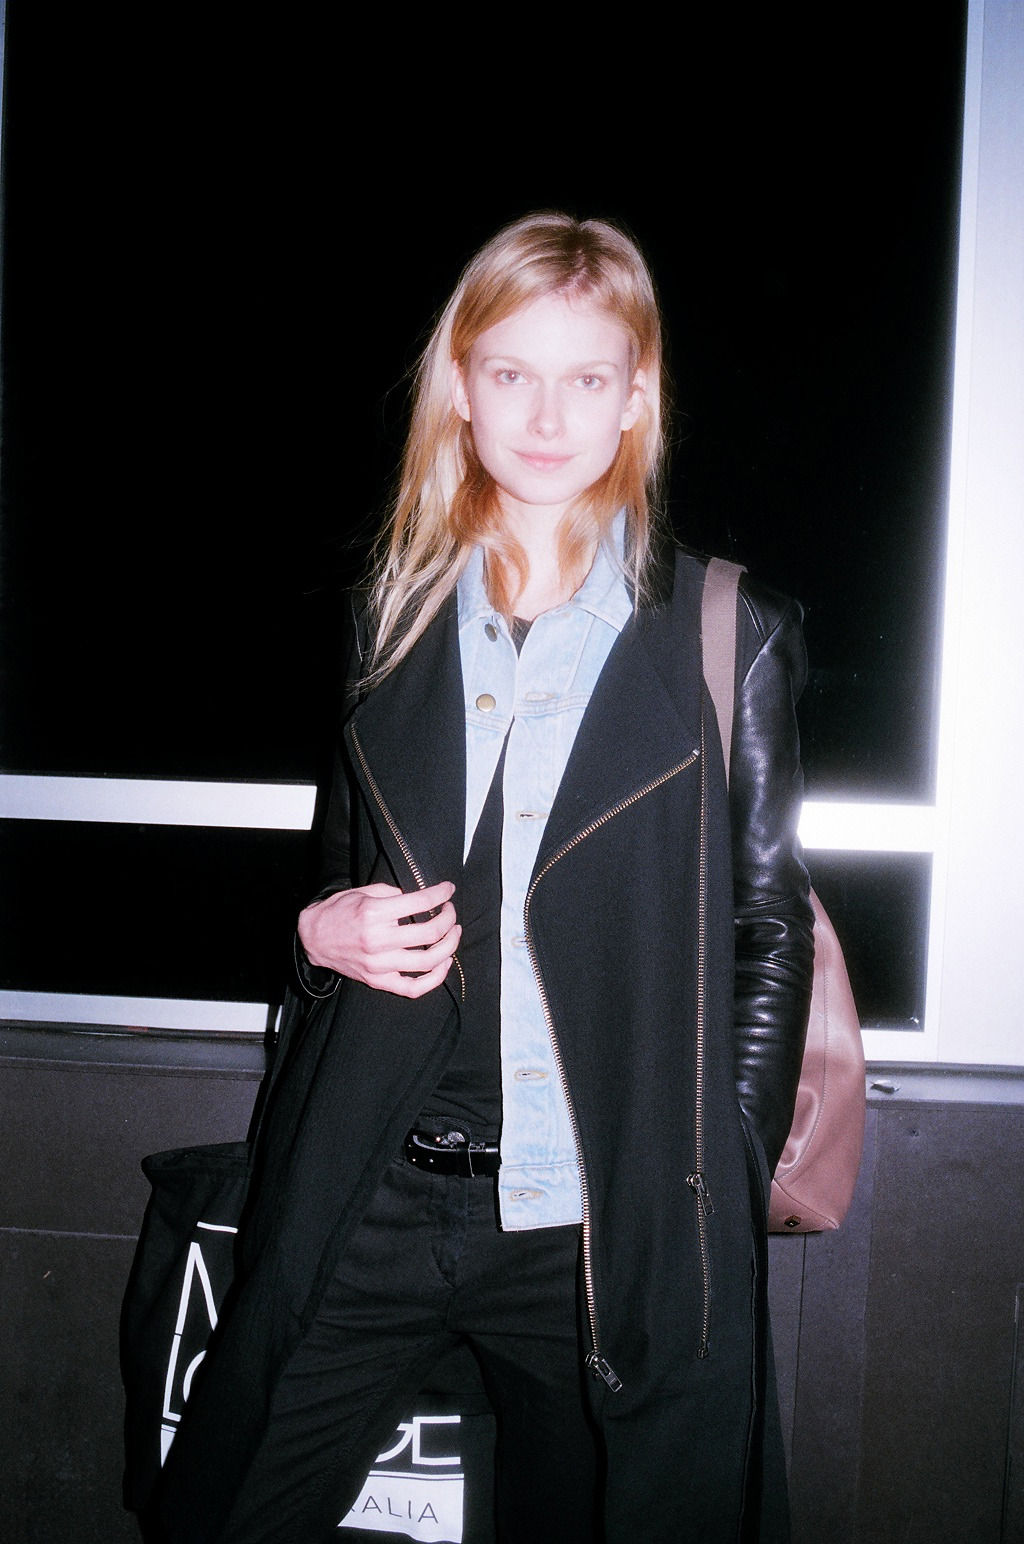 http://dossierjournal.com/style/fashion/after-the-shows/#more-43704